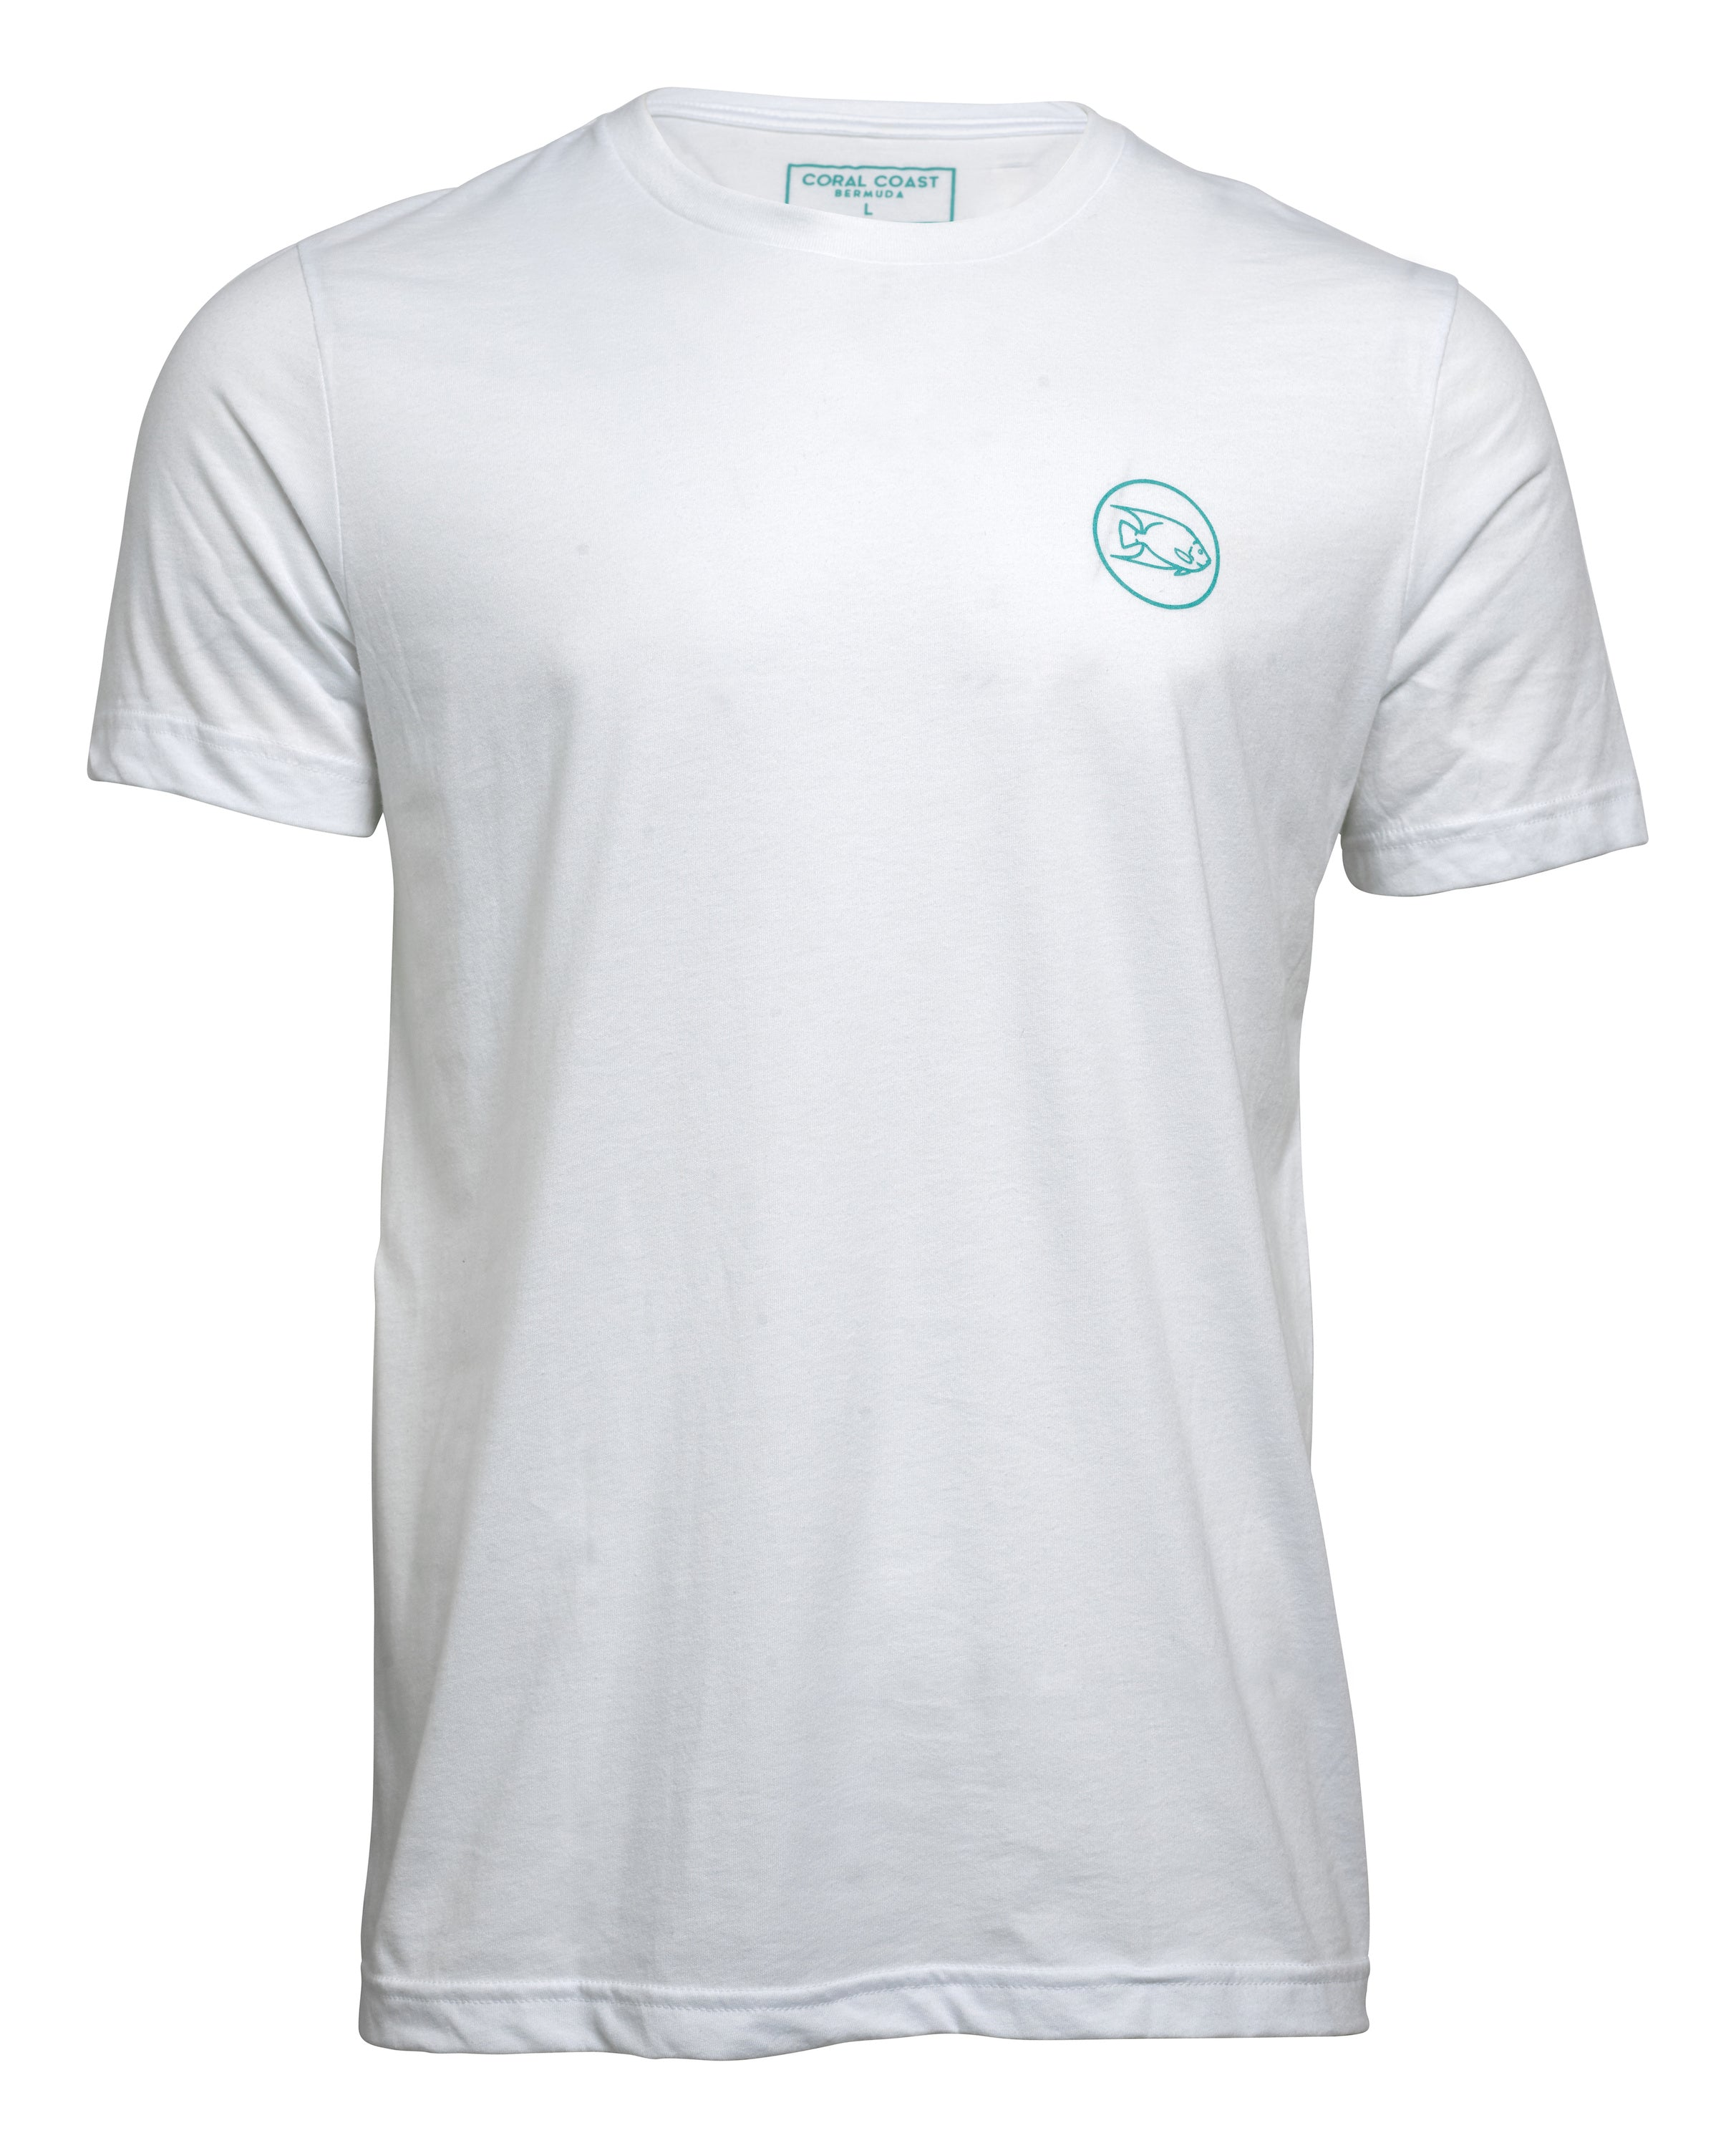 WHITE CC LOGO T-SHIRT